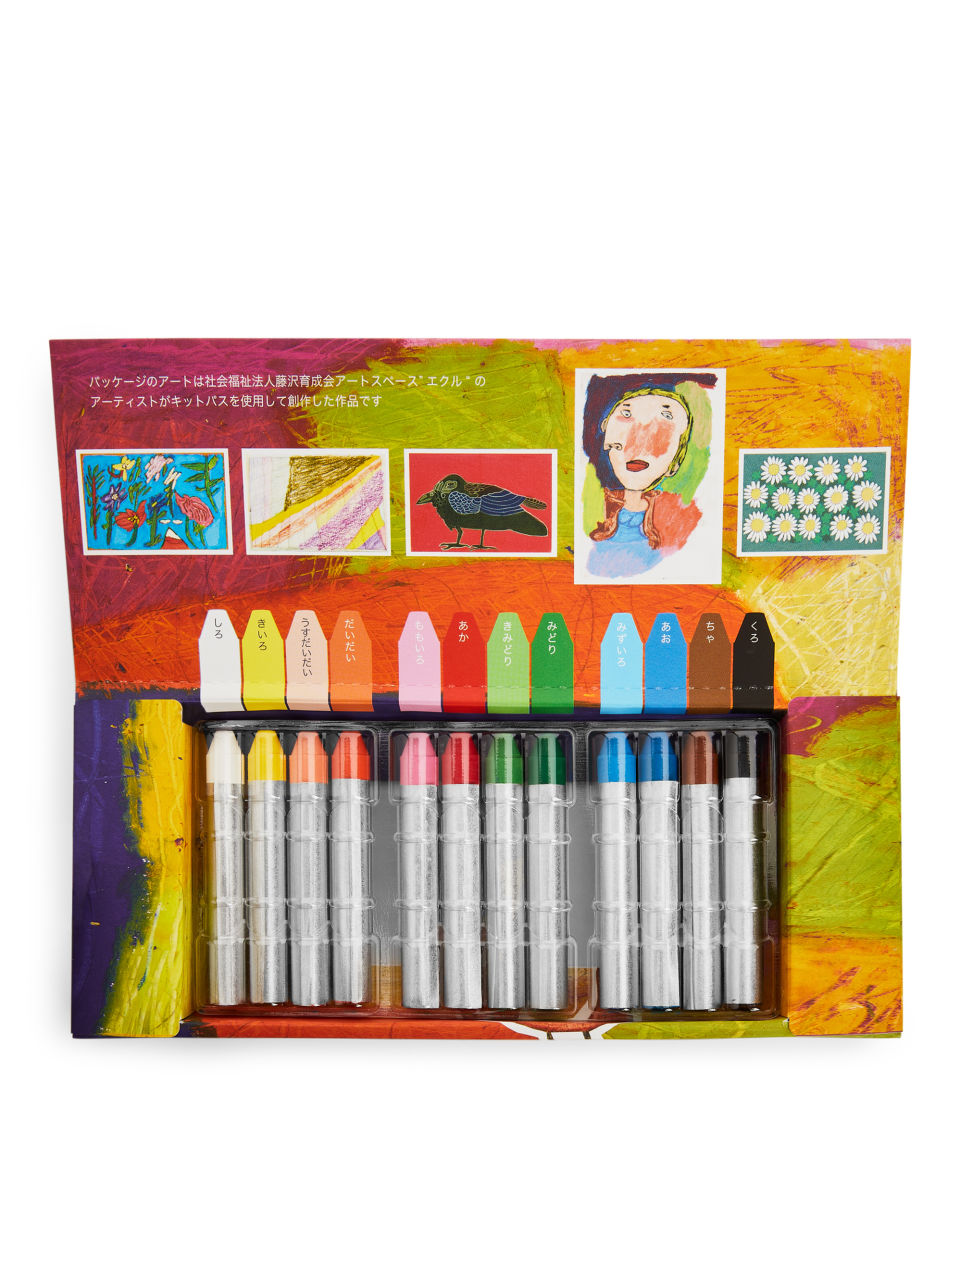 Back image of Arket kitpas ecru crayons, 12-p in white